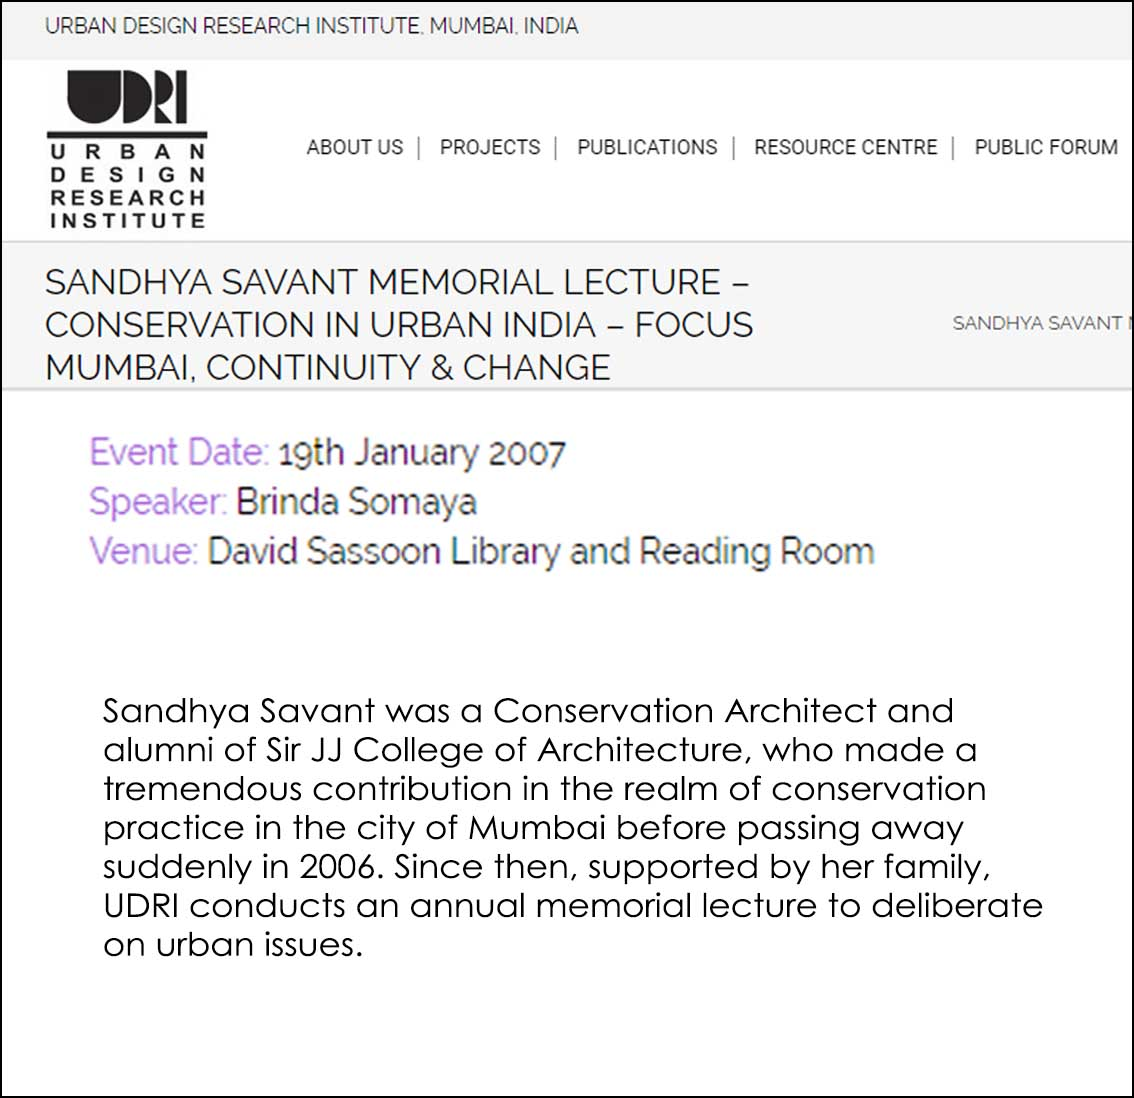 Sandhya Savant memorial lecture conservation in Urban India - Focus Mumbai Continuity and Change , Urban Design Research Institute Mumbai India